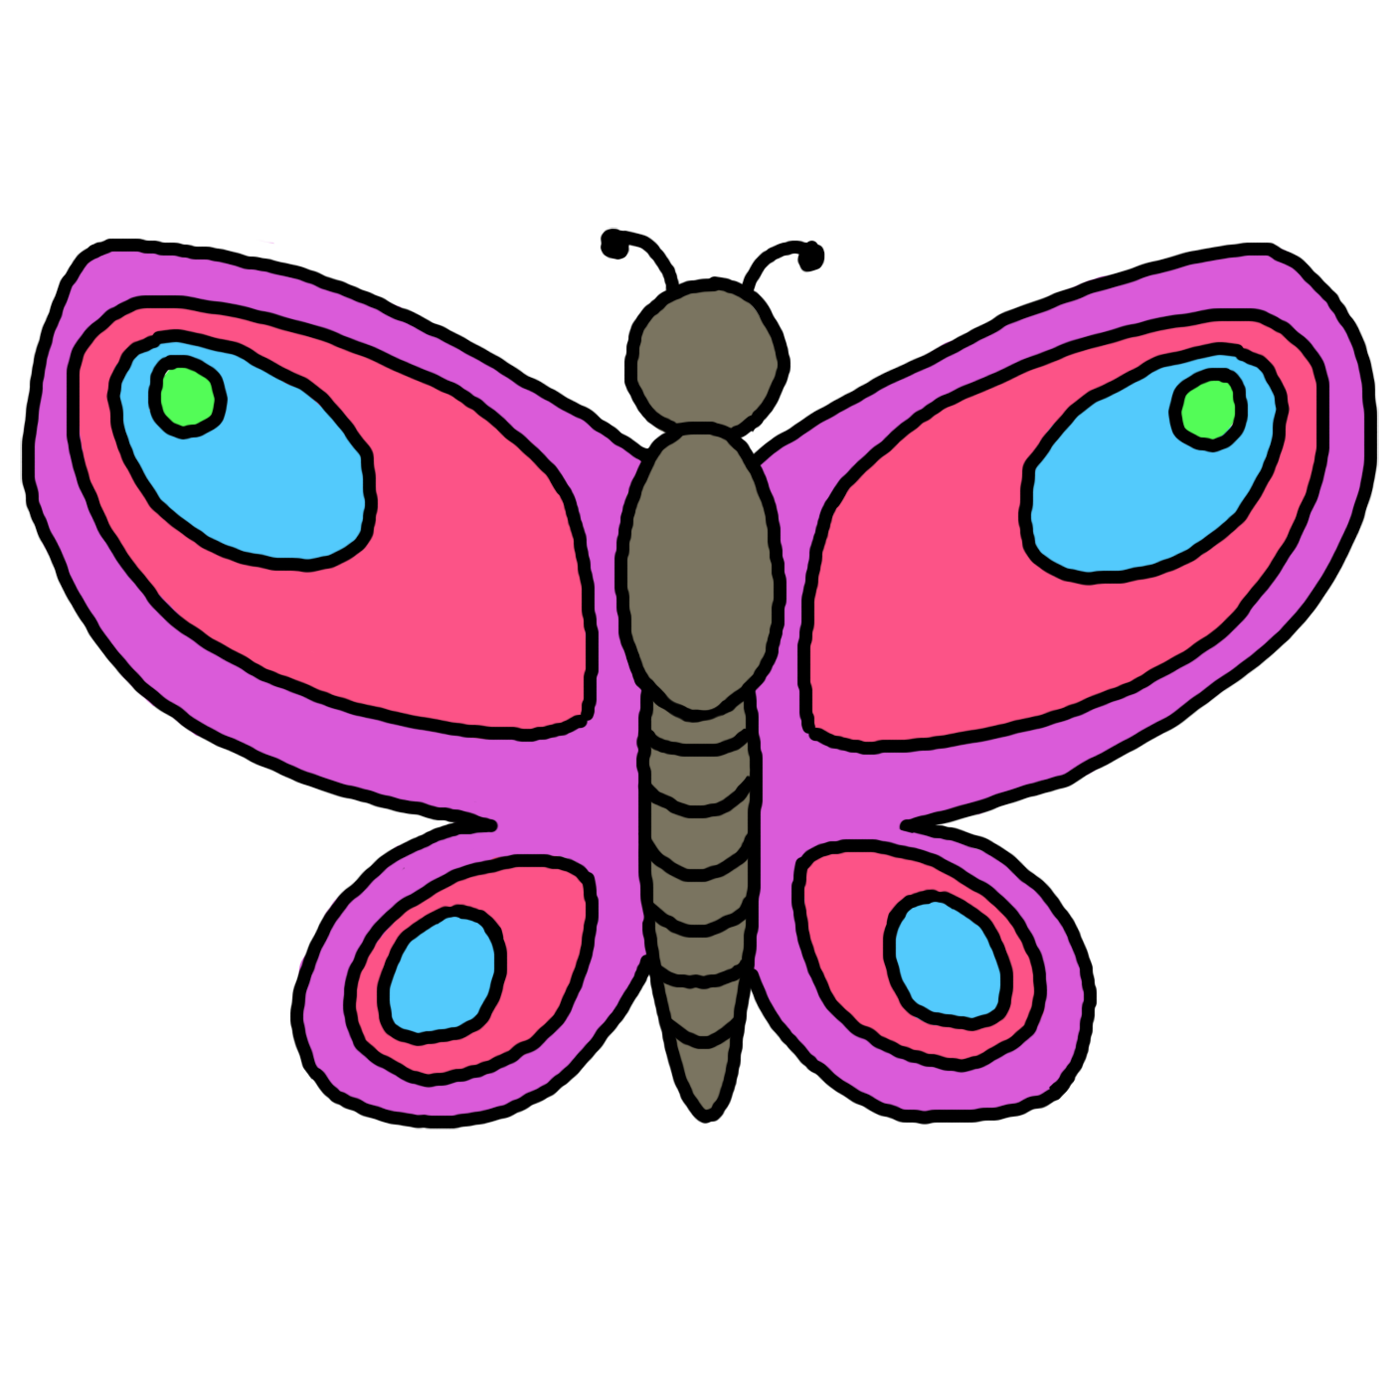 Butterfly Outline Clipart Free Clipart Images Butterfly Outline Butterfly Drawing Clip Art